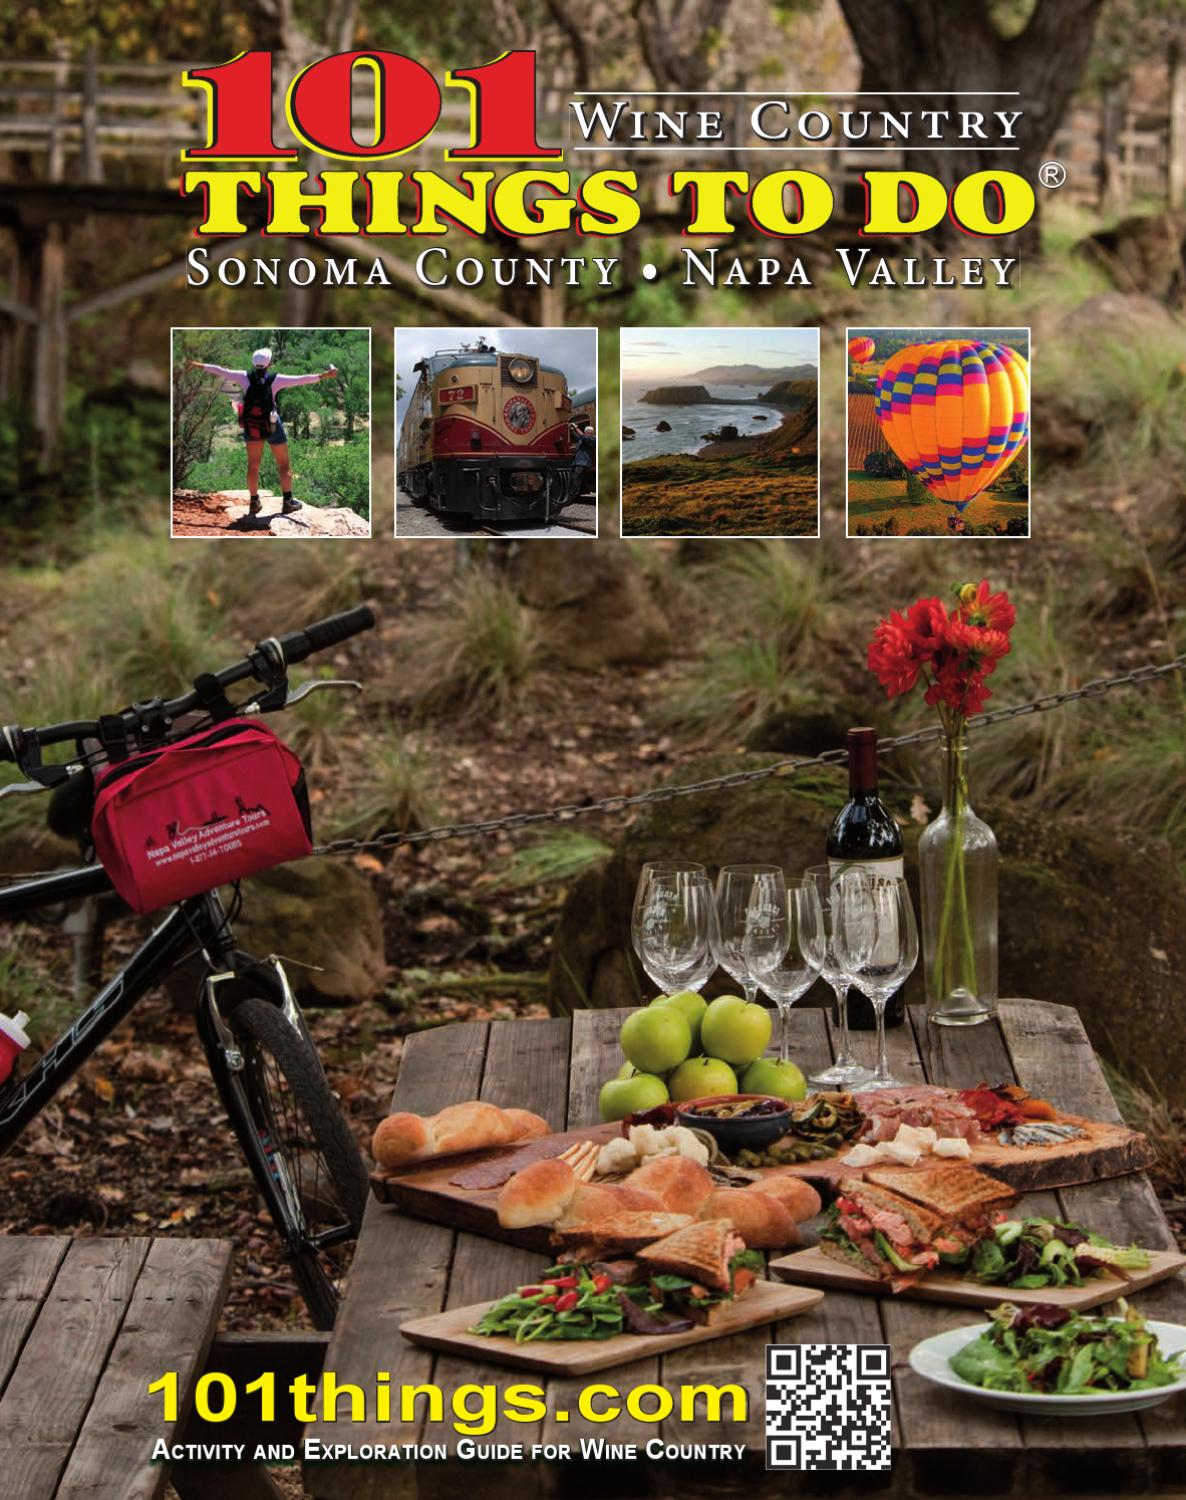 101 Things To Do Wine Country by 101 Things To Do Publications - issuu